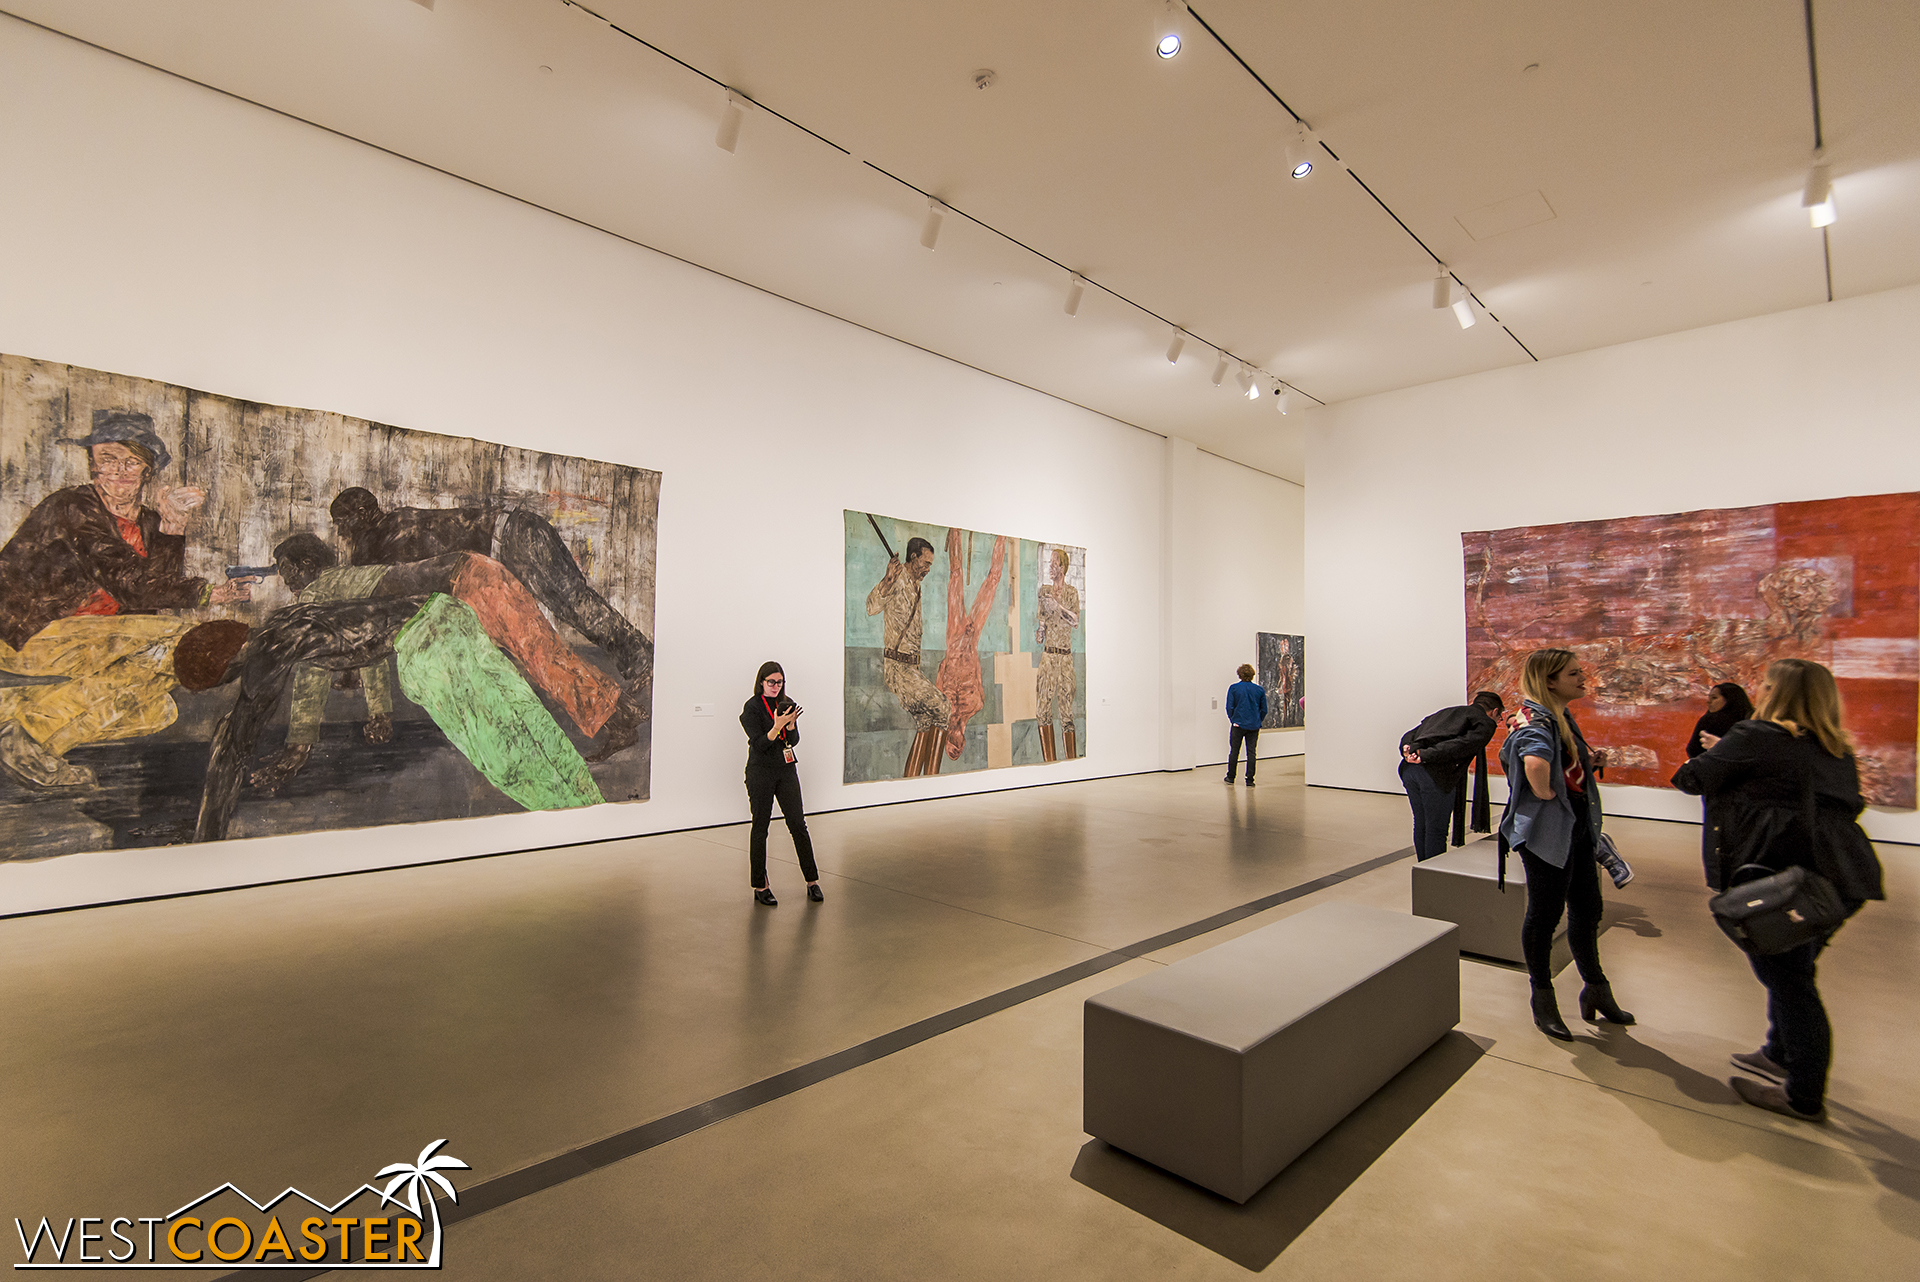 There is plenty of room for large art pieces at The Broad!